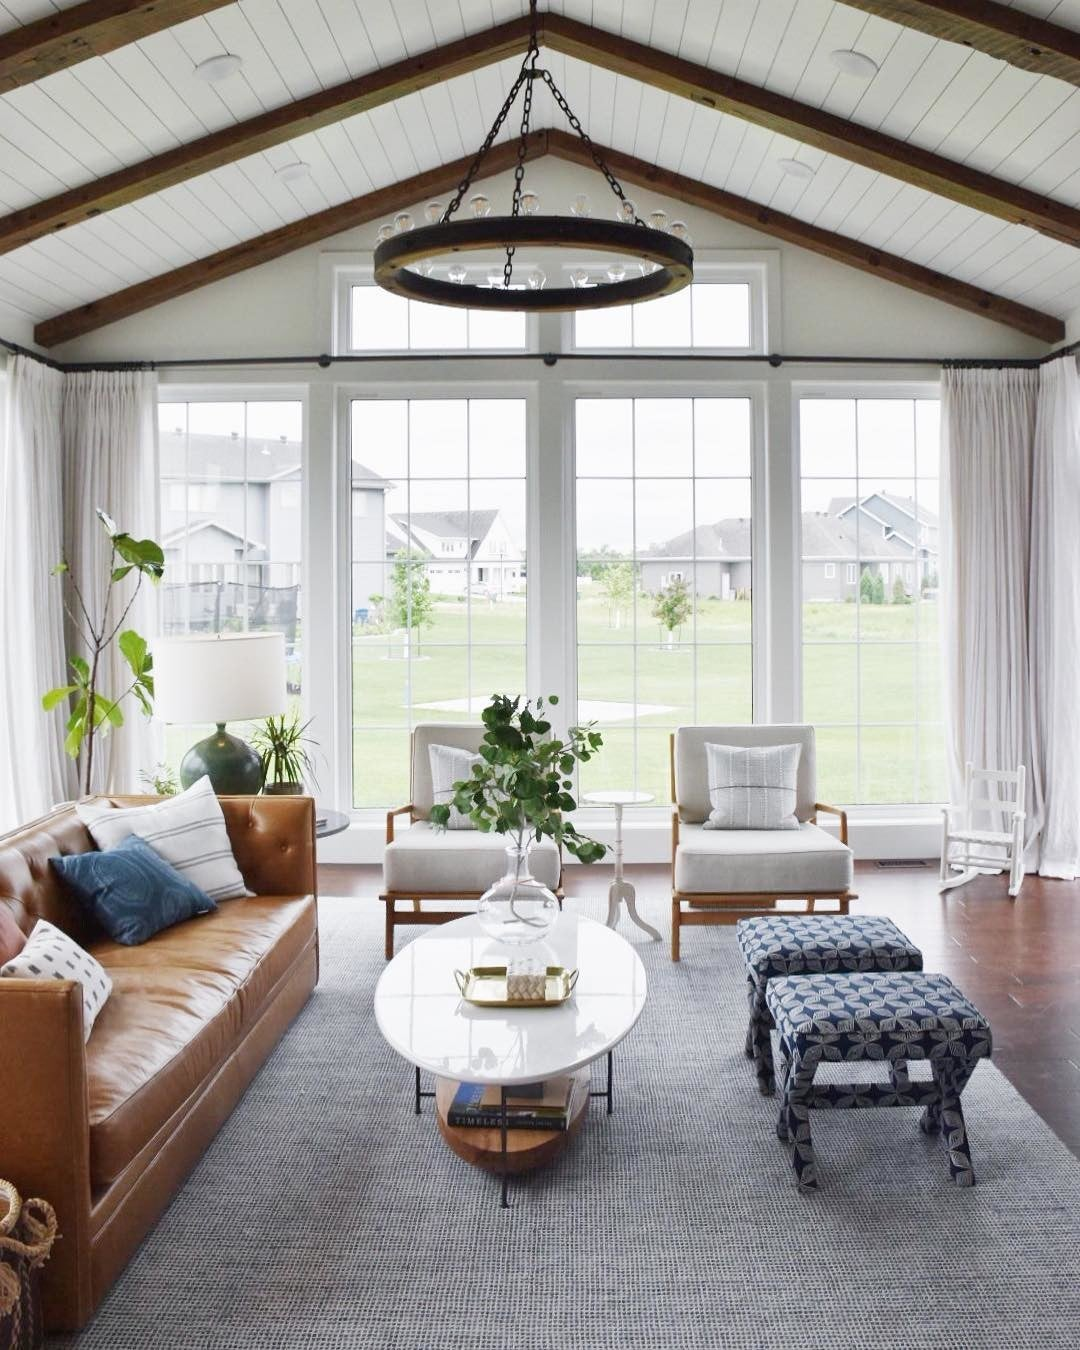 Rug Ed: Rugs for Large Rooms - Fresh American Style